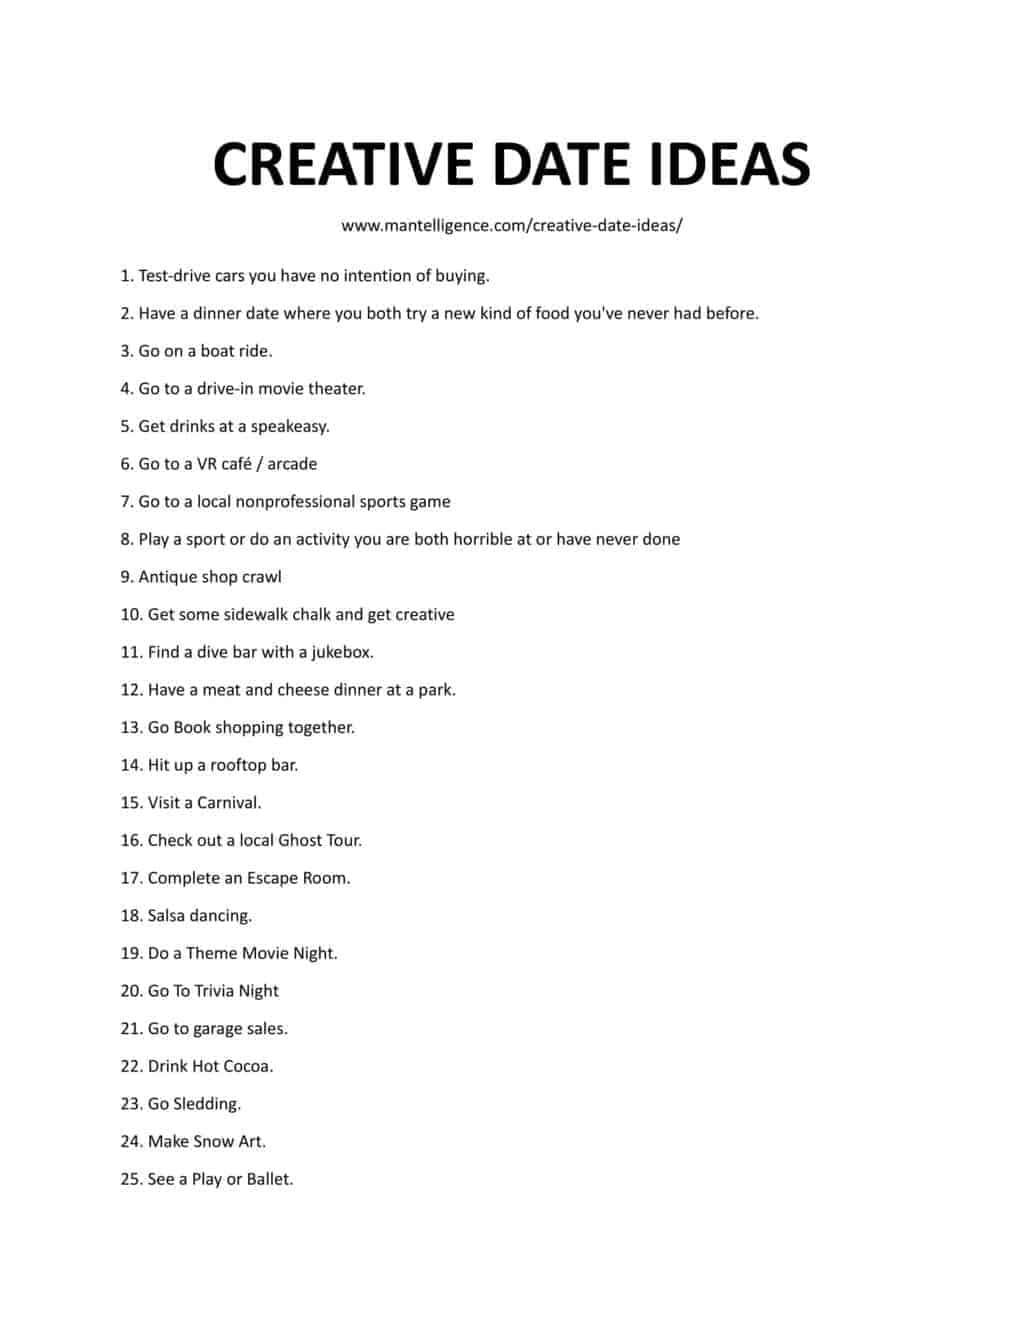 Downloadable and Printable List of Creative Date Ideas